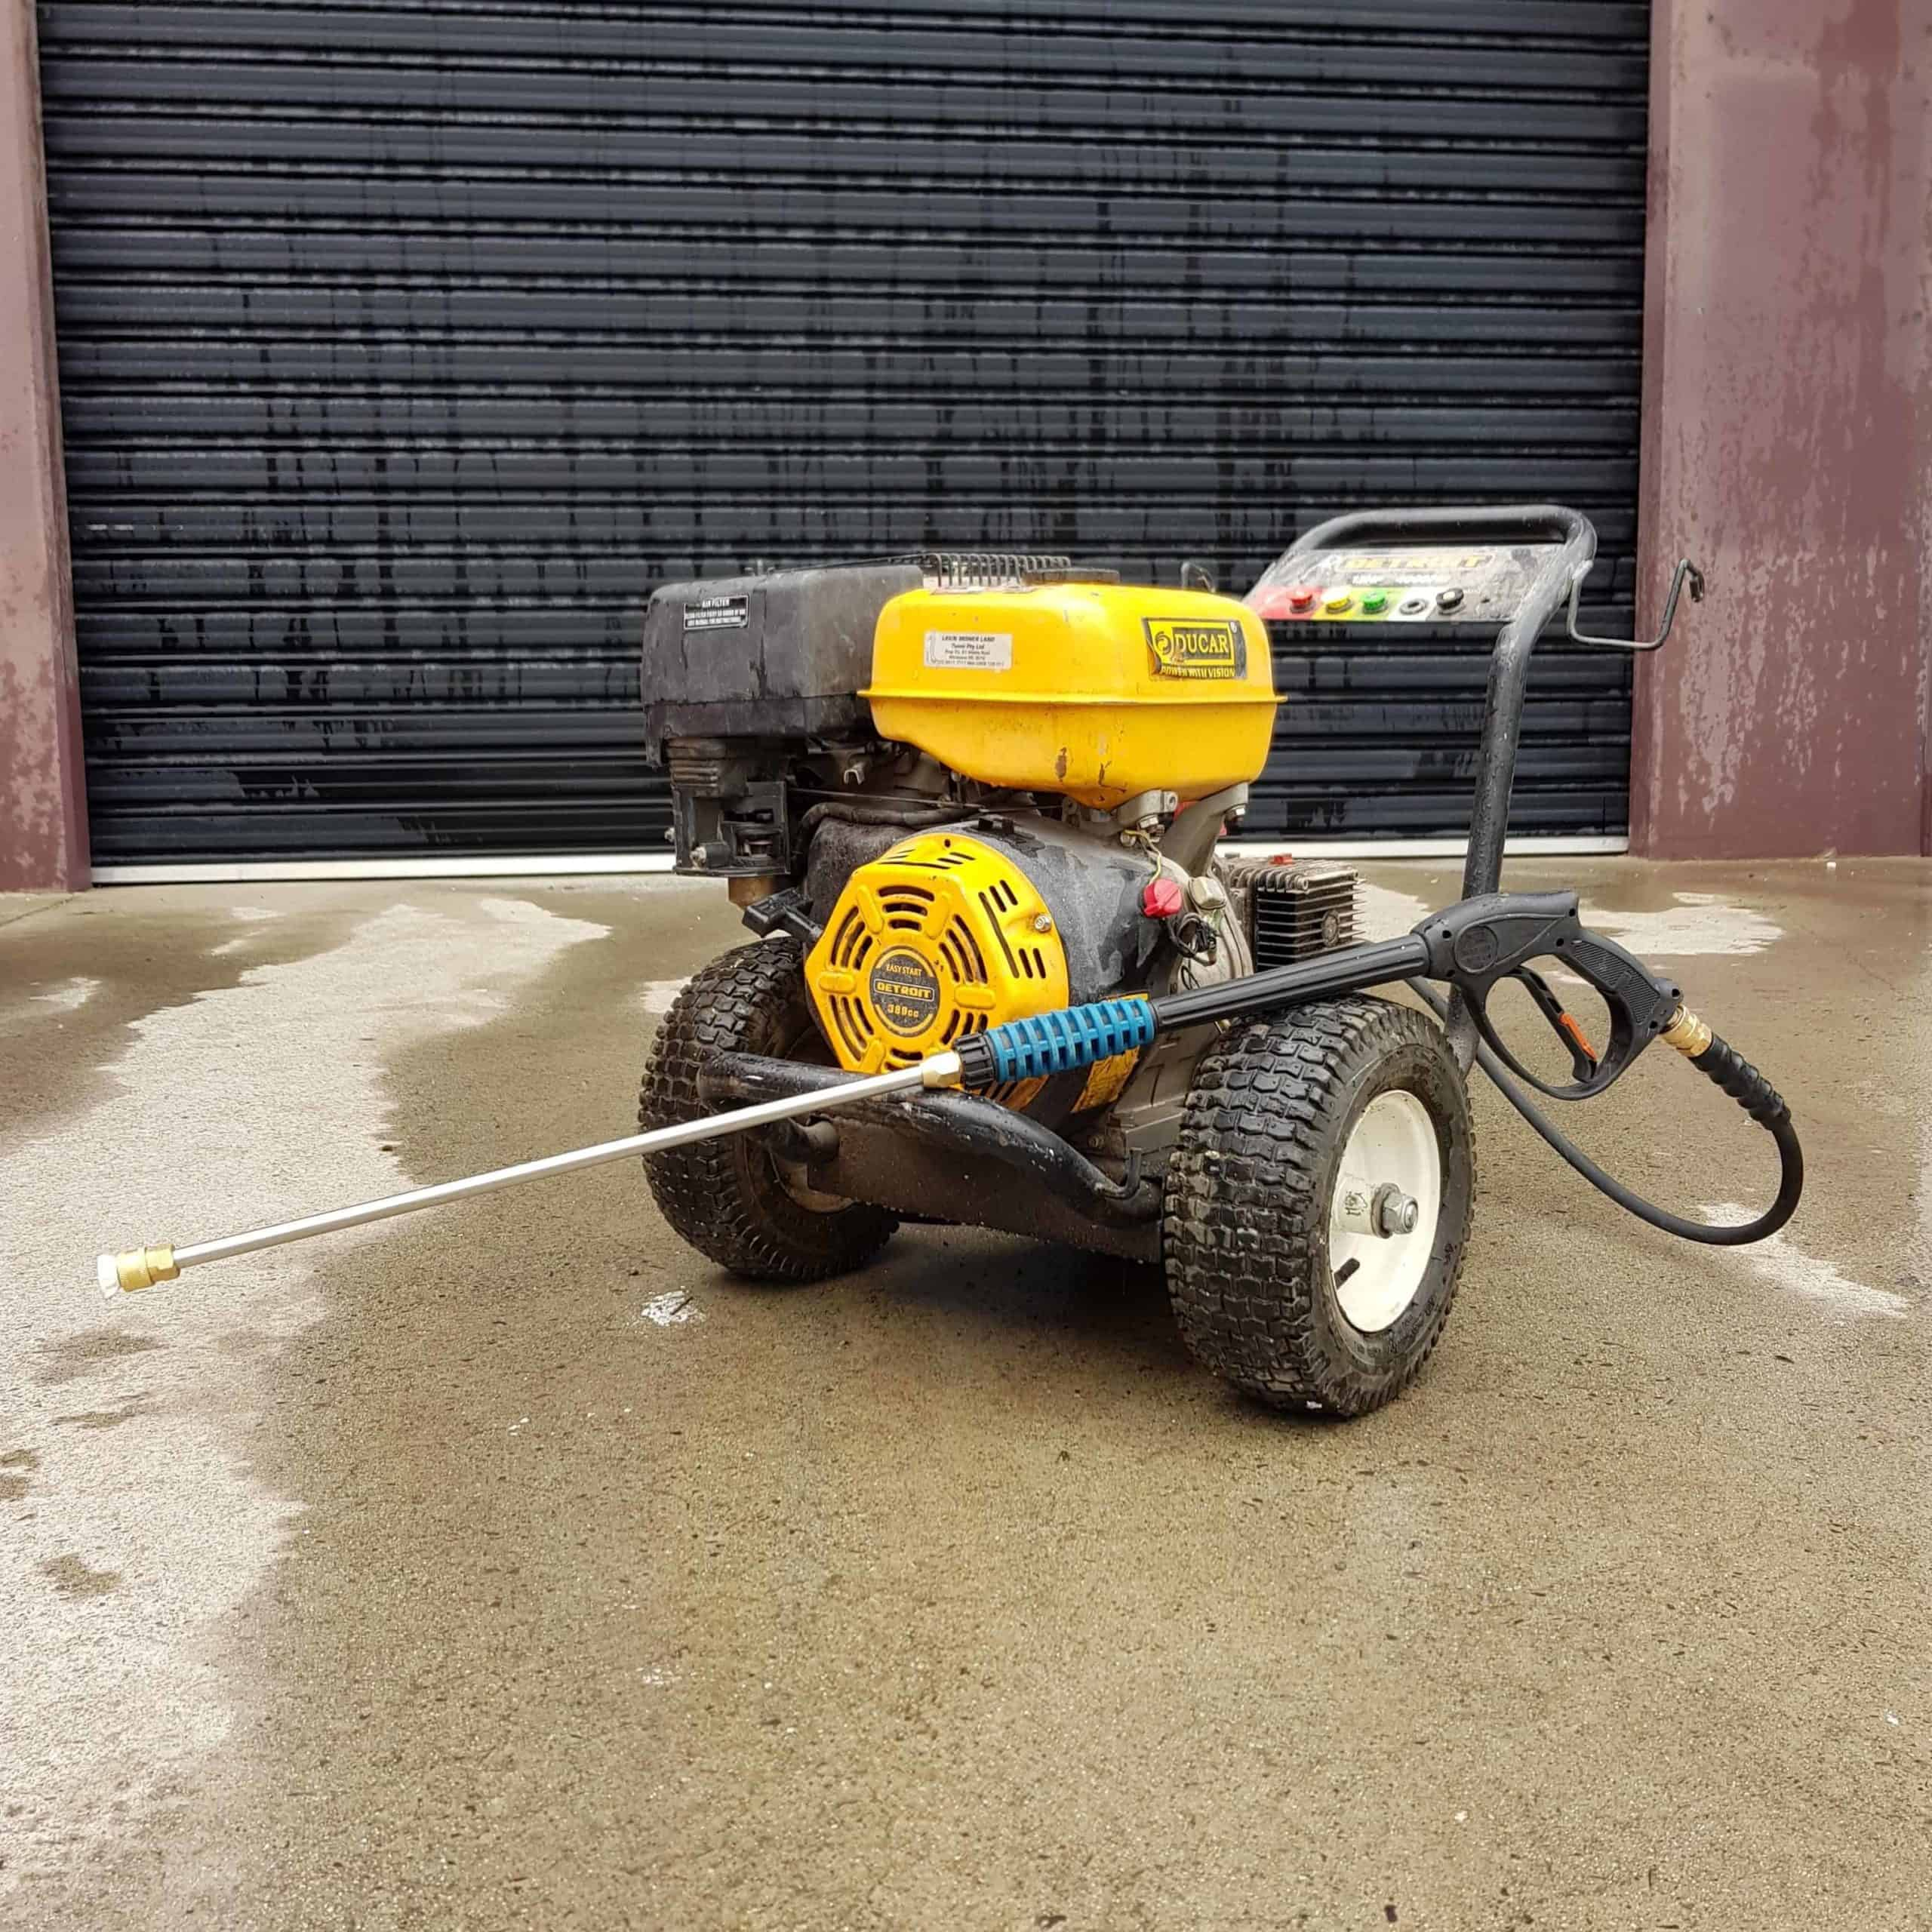 our Ducar Pressure washer